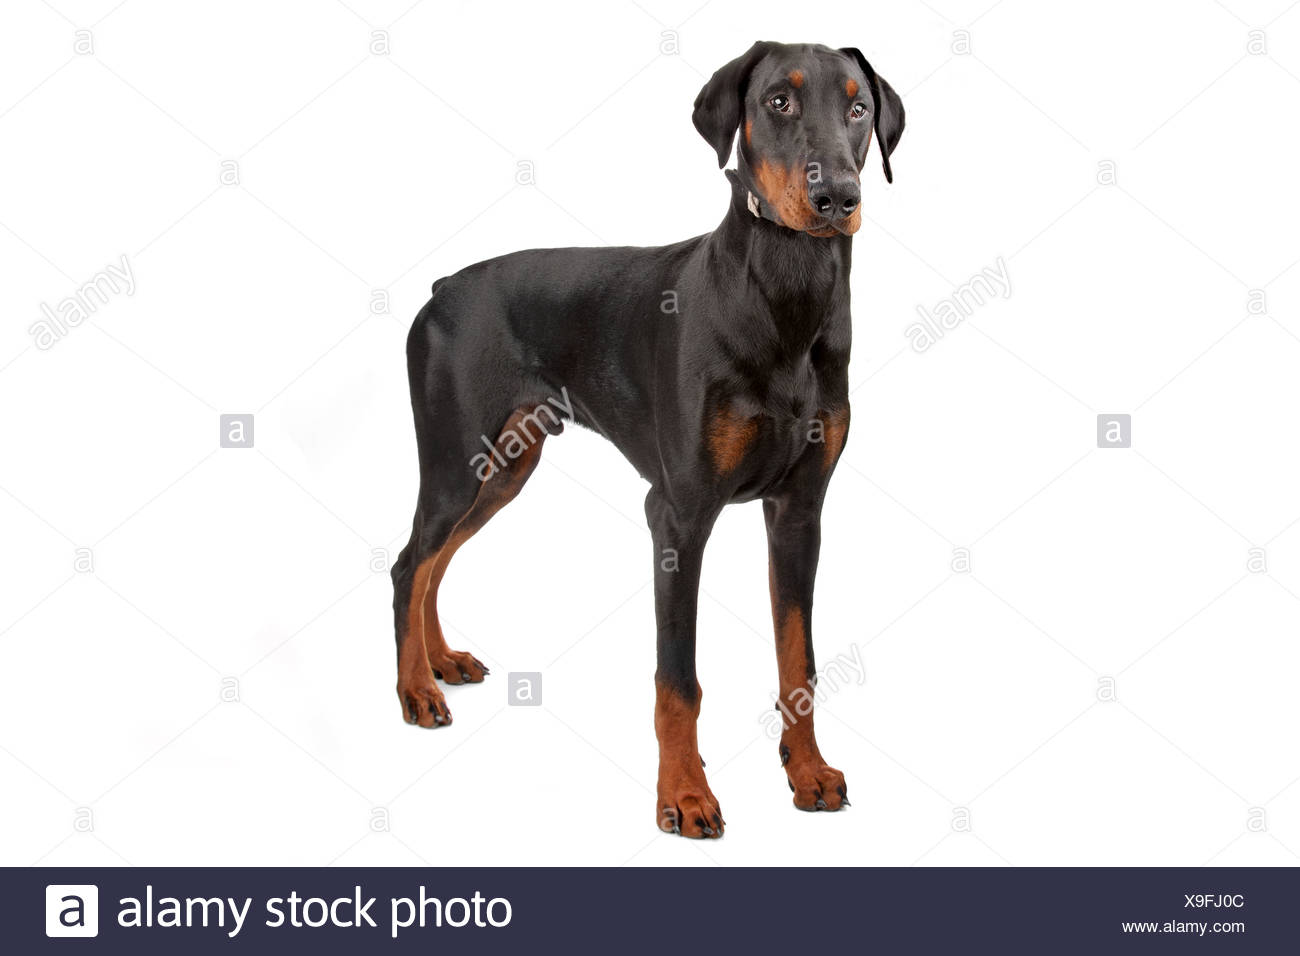 Doberman Pinscher isolated on white - Stock Image